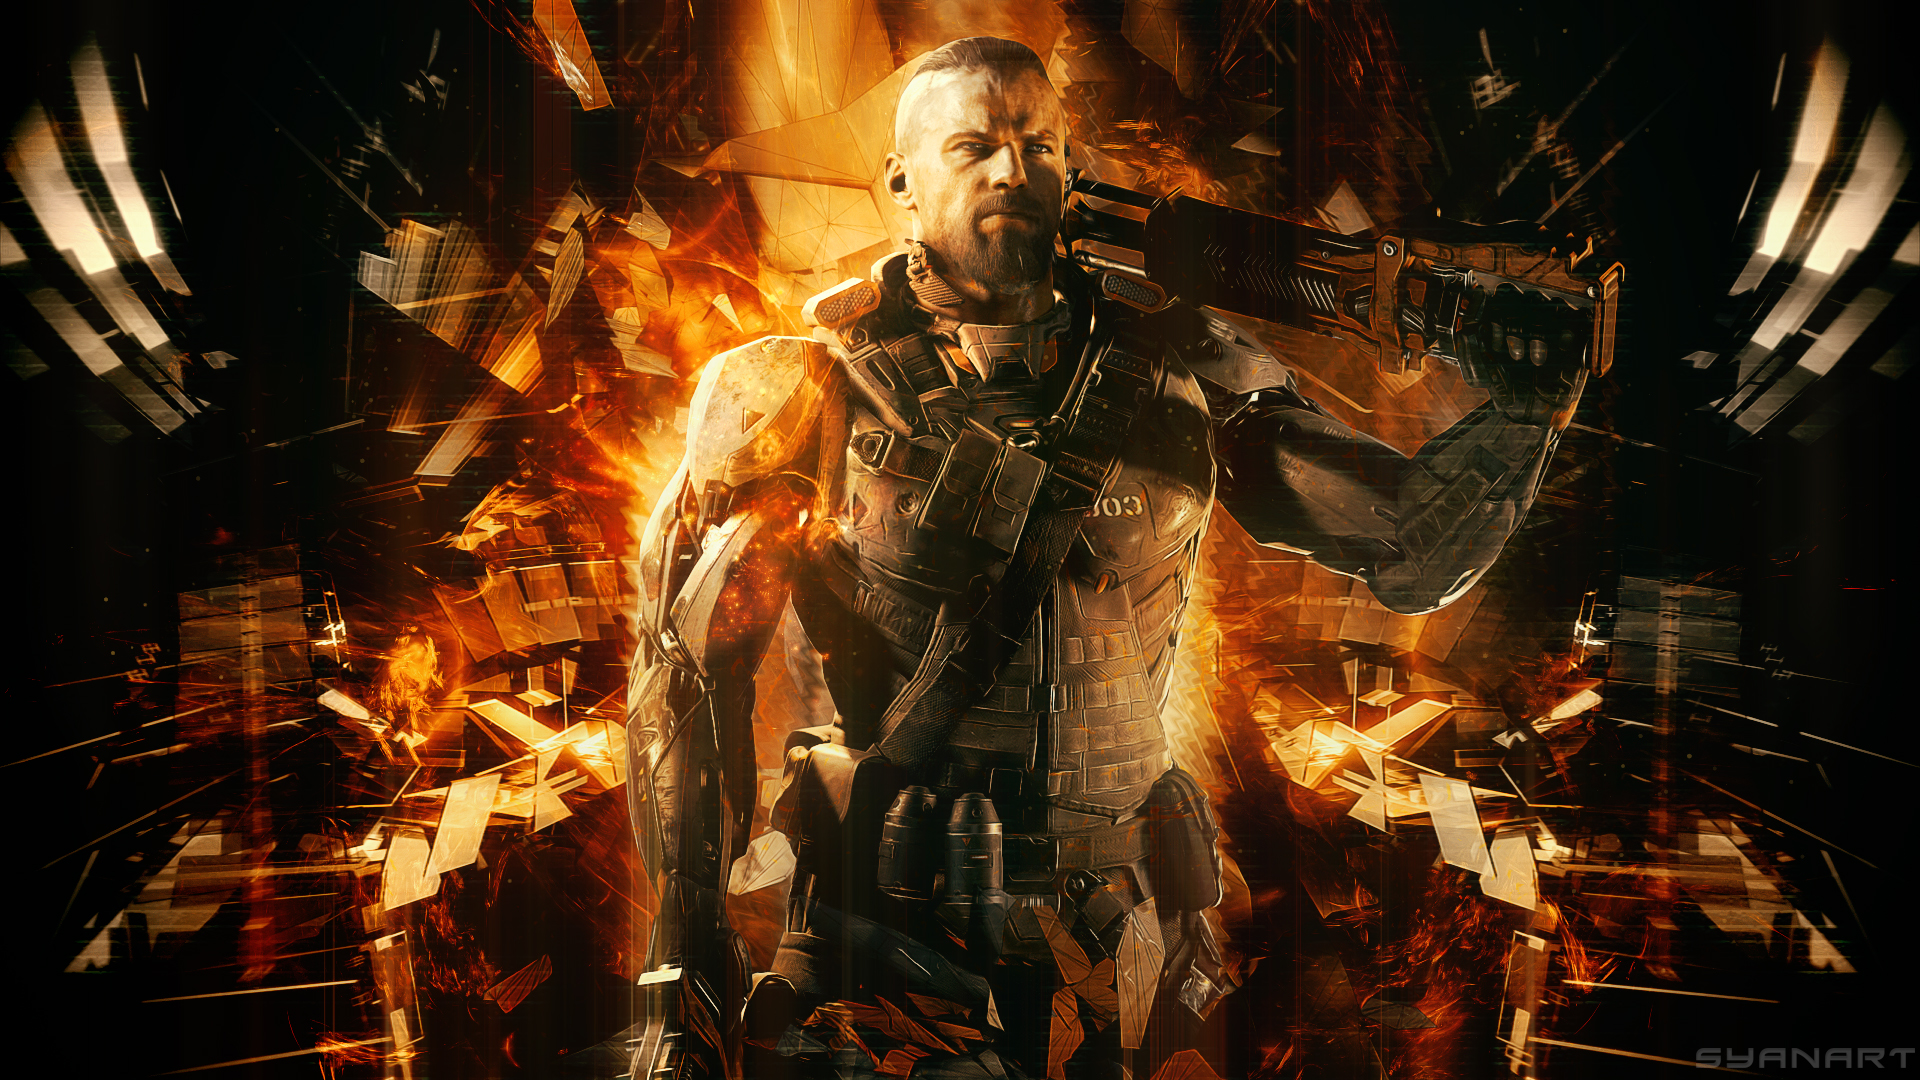 Call of Duty Black Ops 3 Full HD Wallpaper SyanArt Station